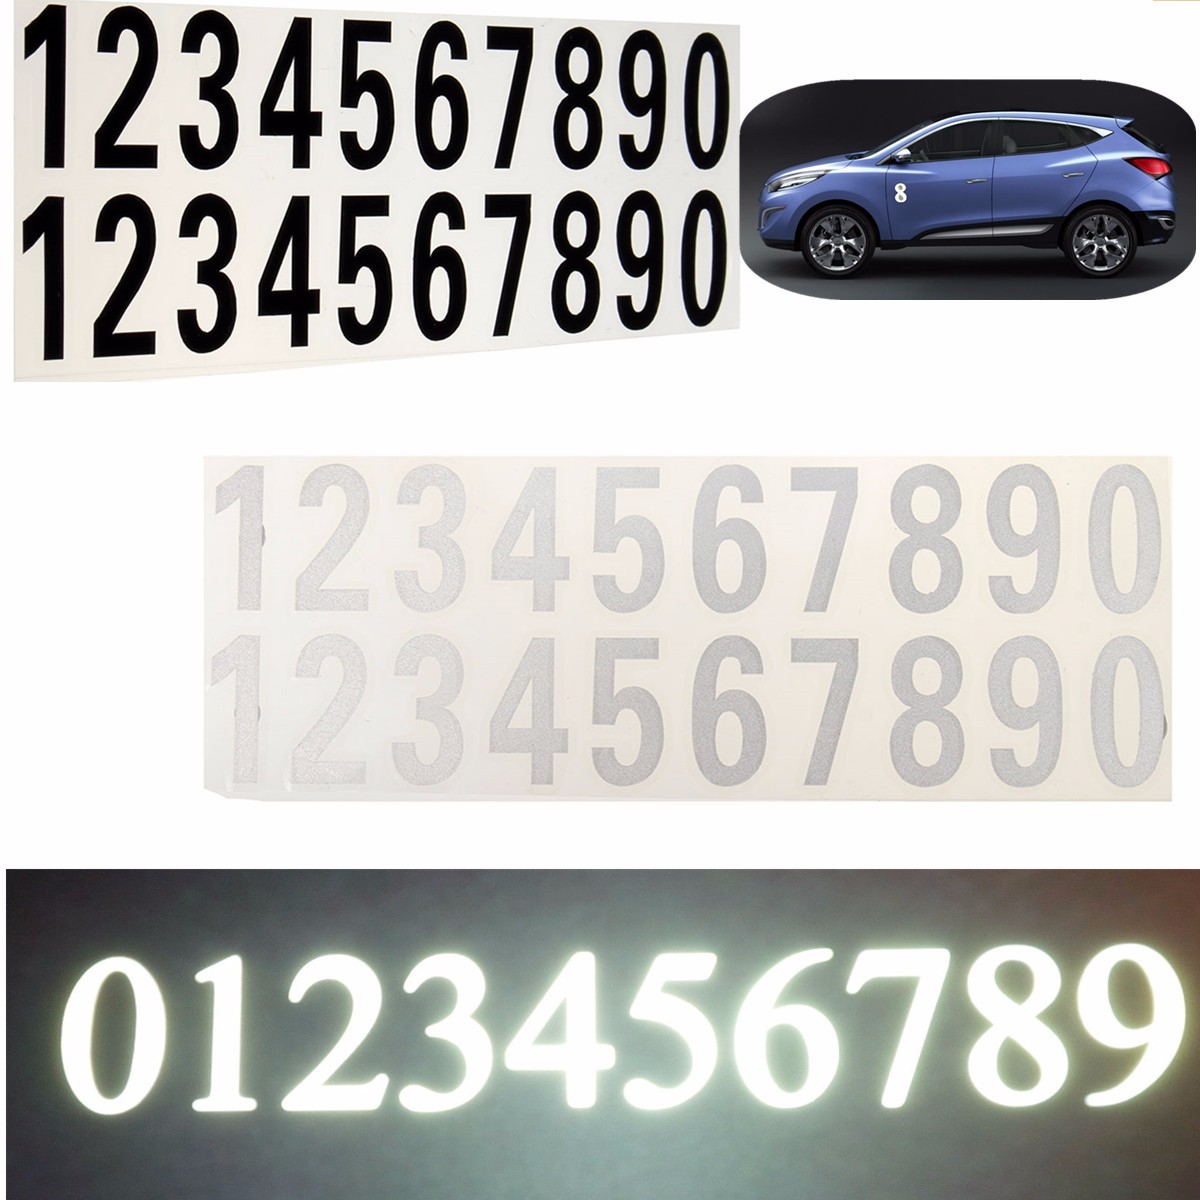 street address mailbox number car vinyl decal reflective stickers white blackchina mainland